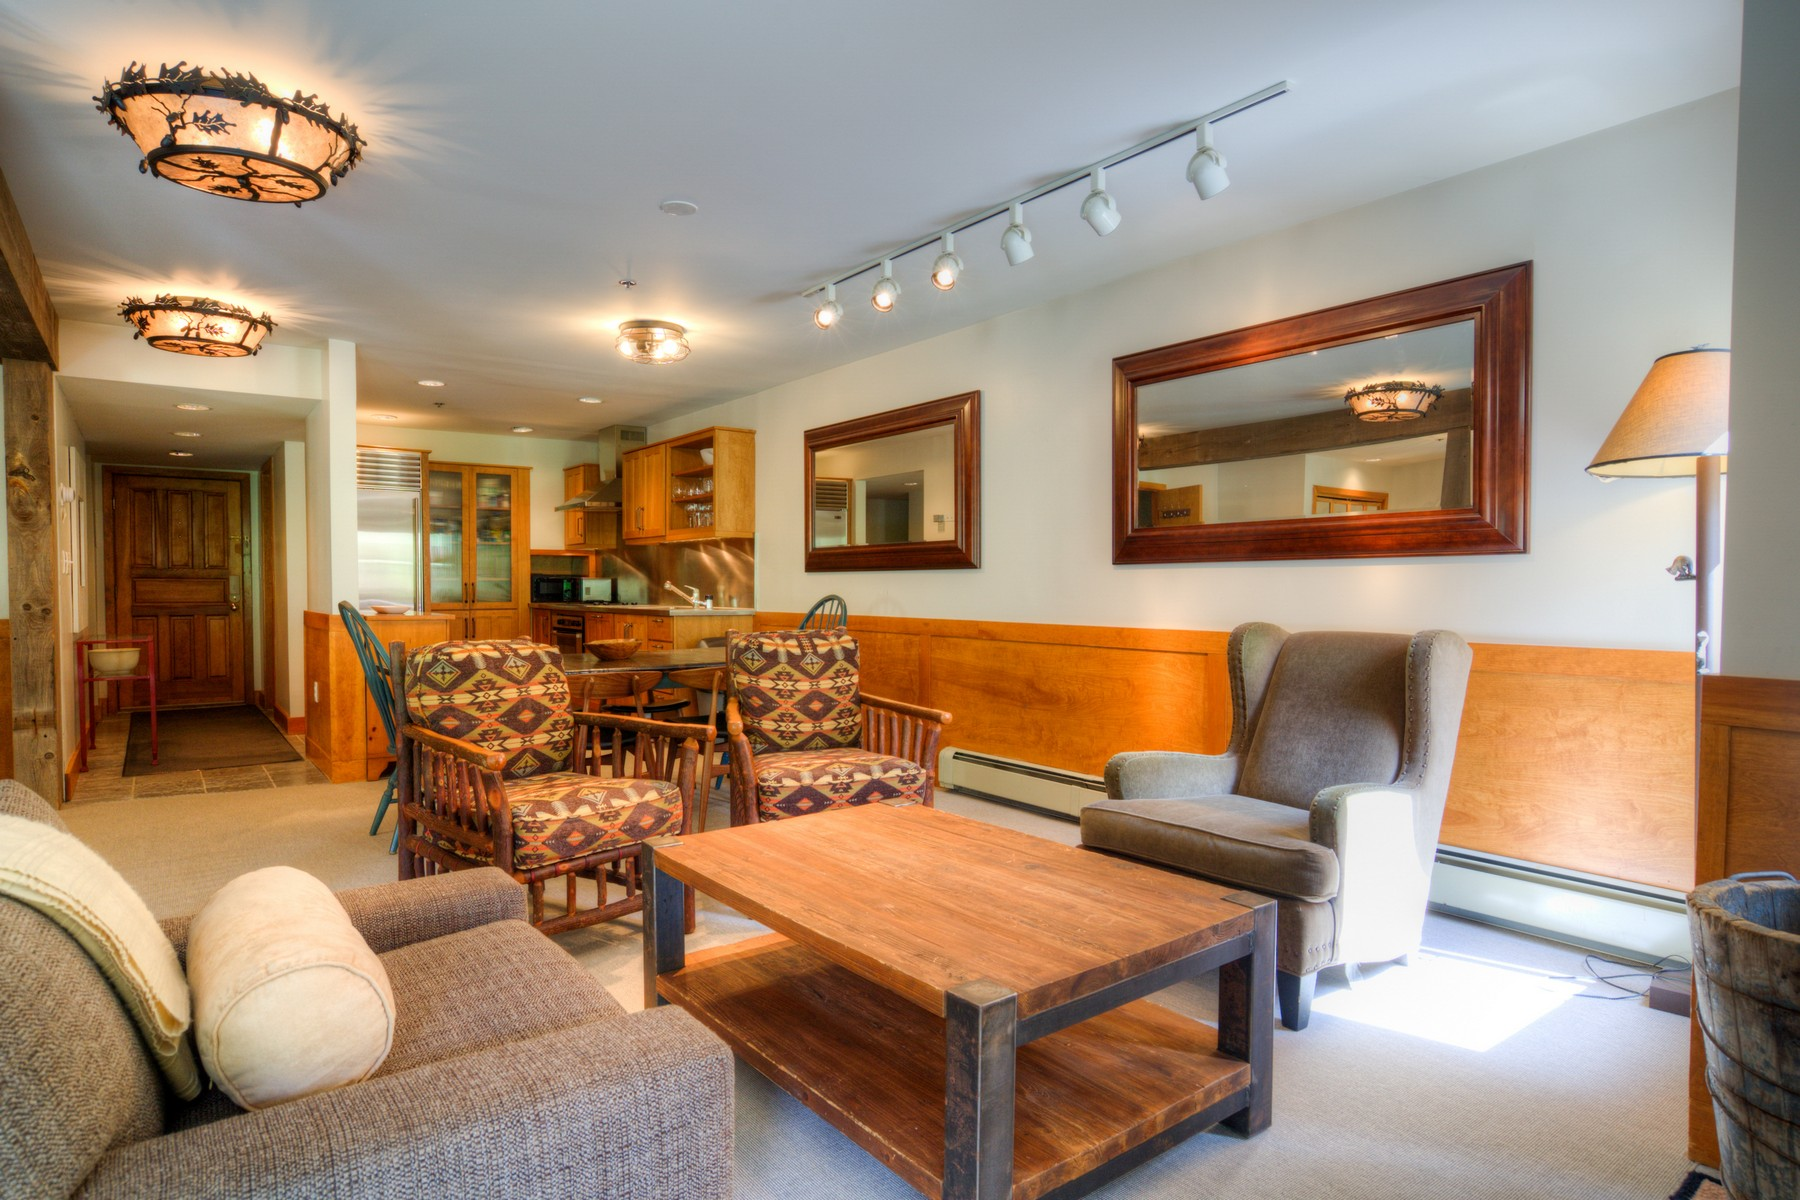 Condominiums for Sale at 776 Stratton Mountain Access Road Mountain W, Stra 776 Stratton Mountain Access Rd Mountain W Stratton, Vermont 05155 United States